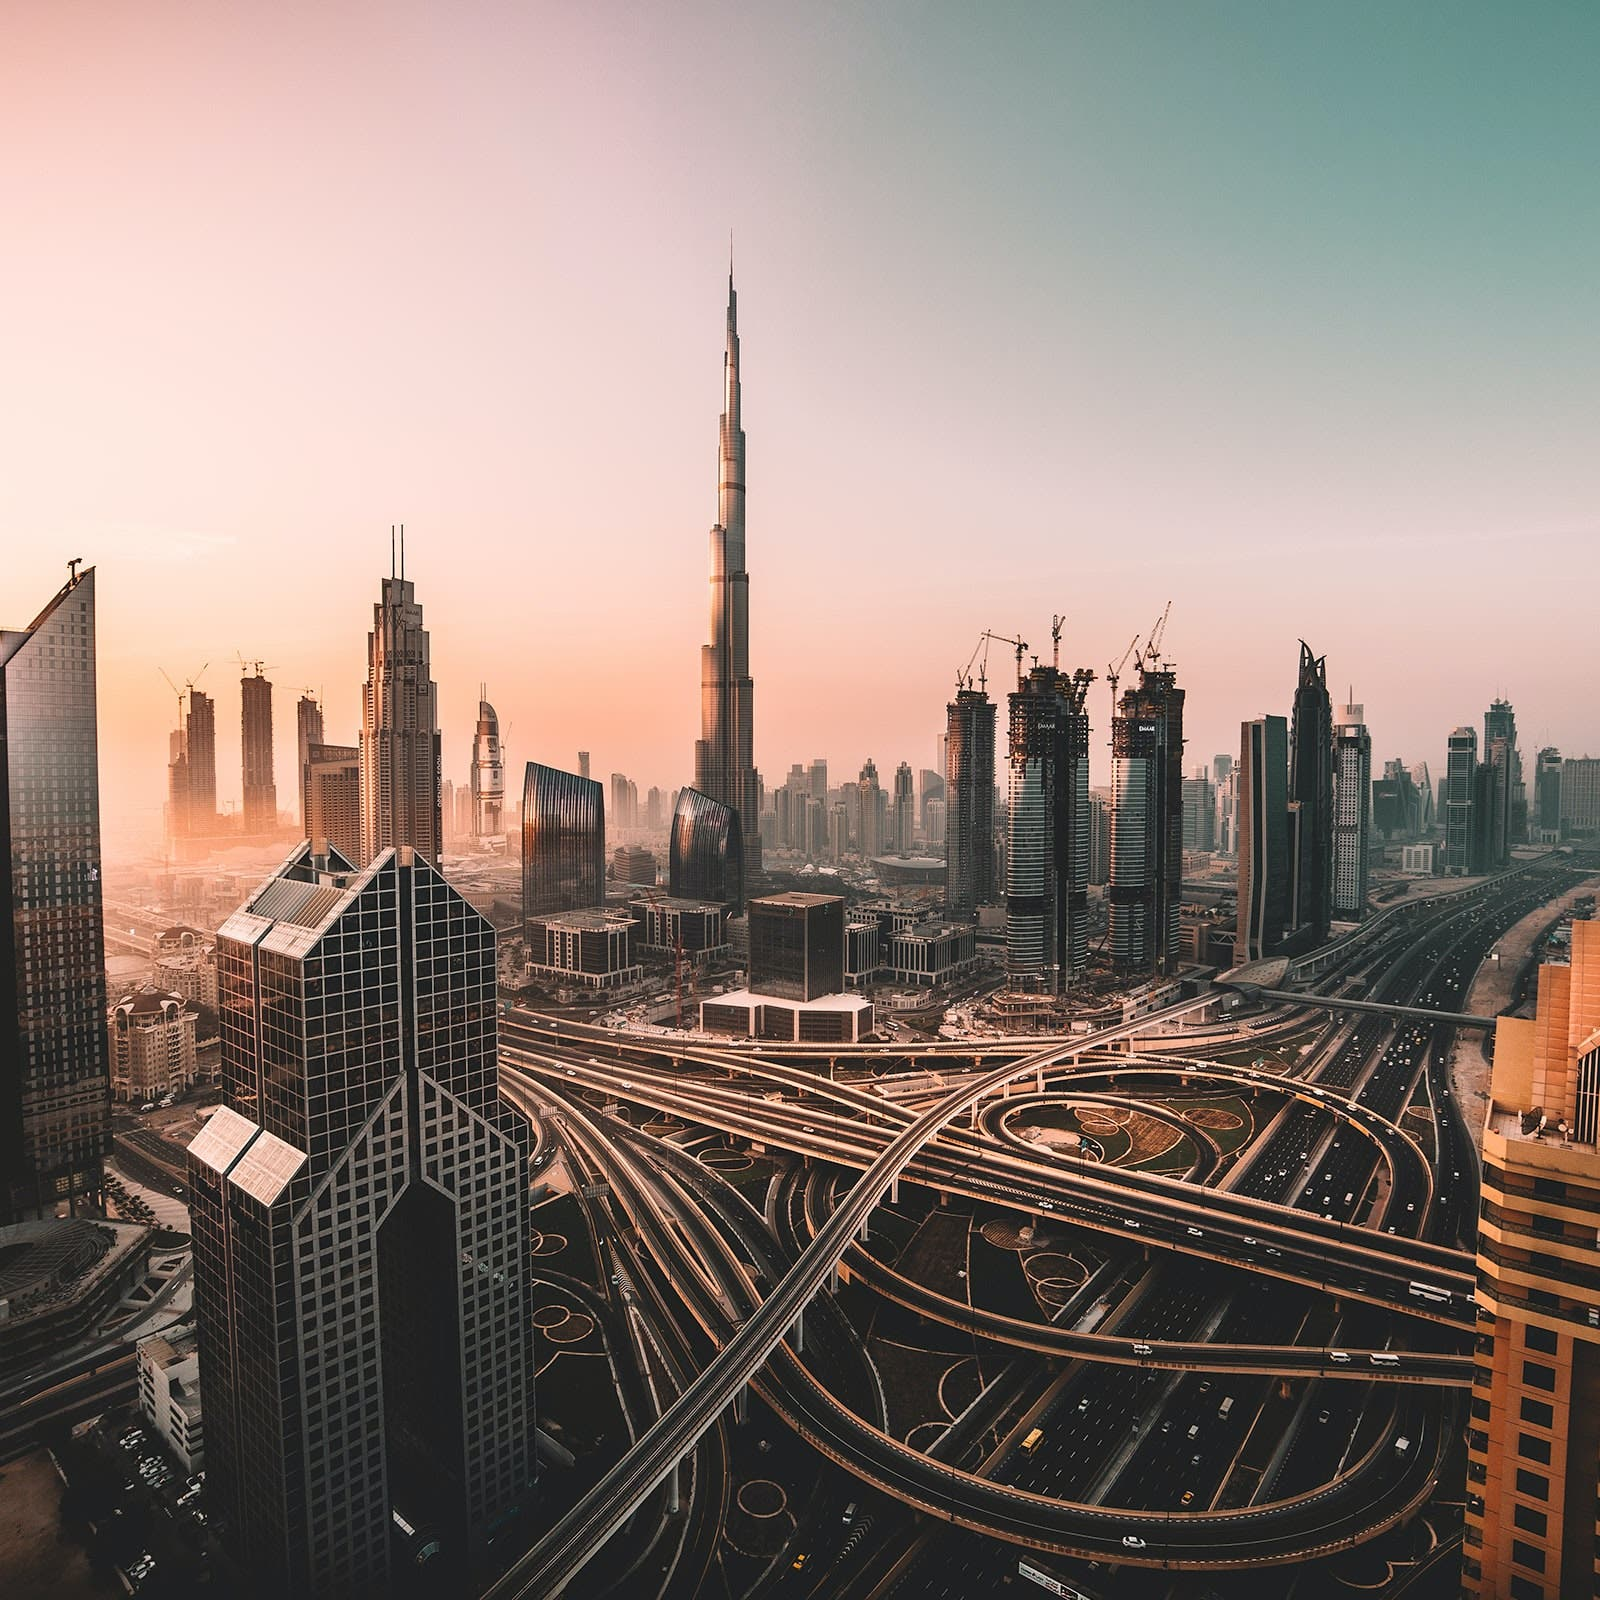 UAE announces plans to invest billions in economy, ease visa rules for expats